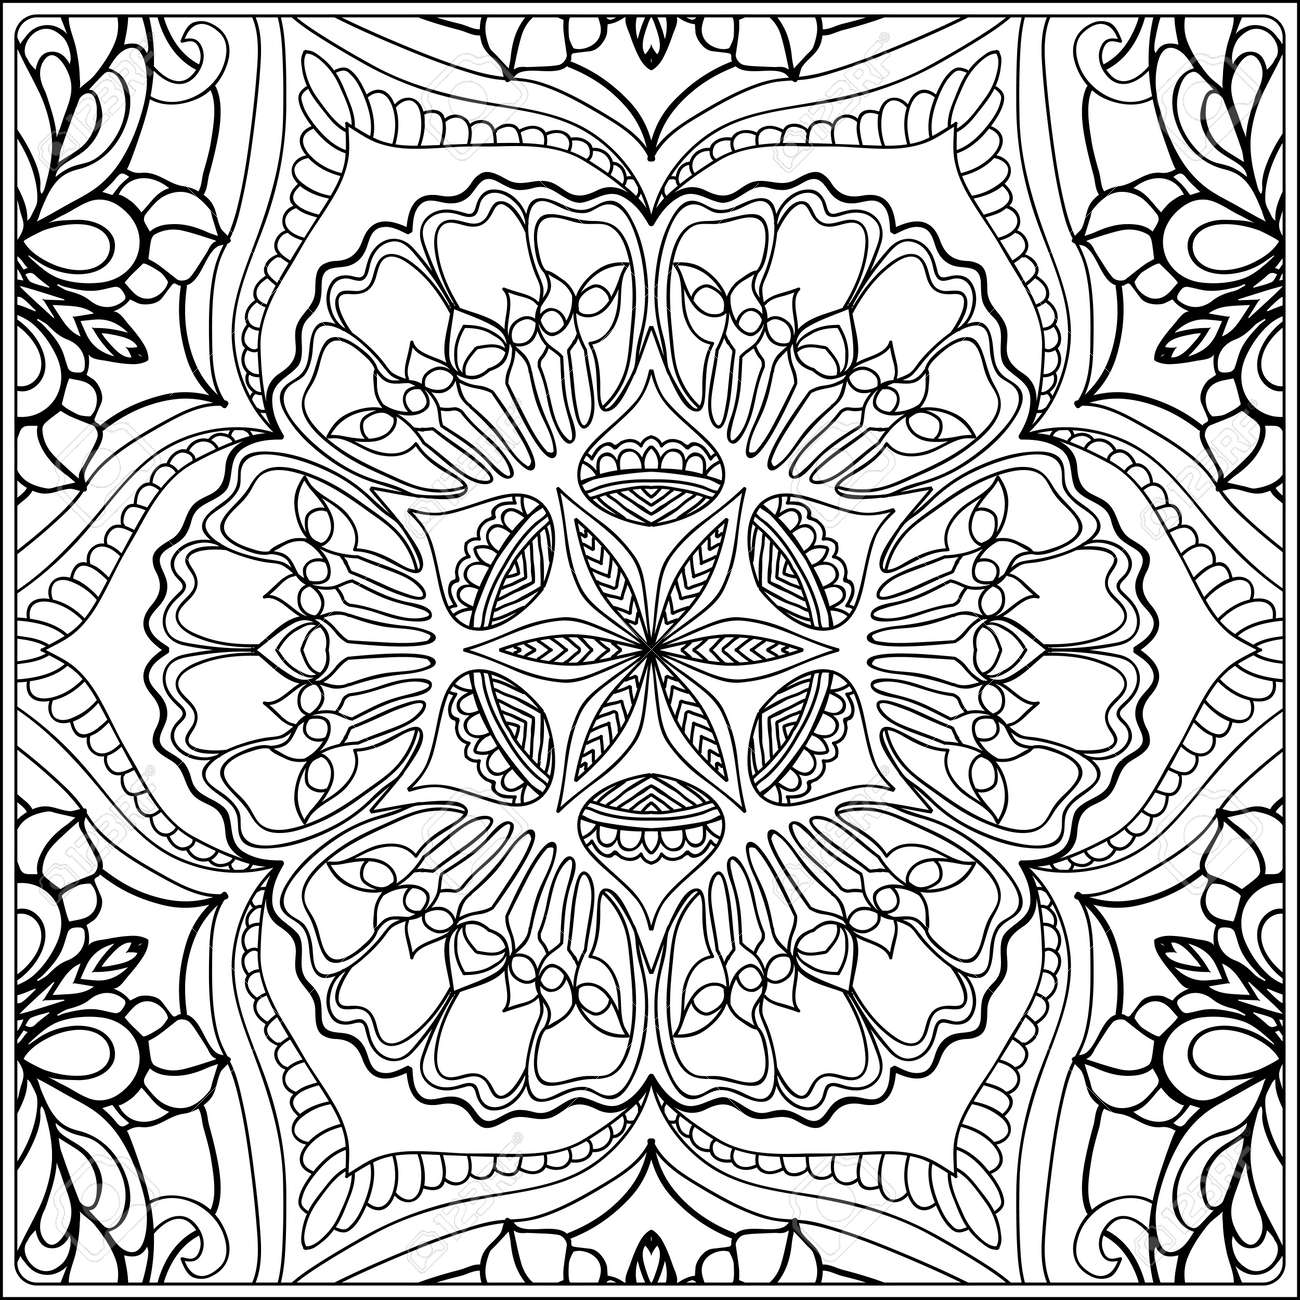 seamless pattern. Outline hand drawing. Good for coloring page for the adult coloring book. Stock vector illustration.Abstract vector decorative ethnic mandala black and white - 111921649